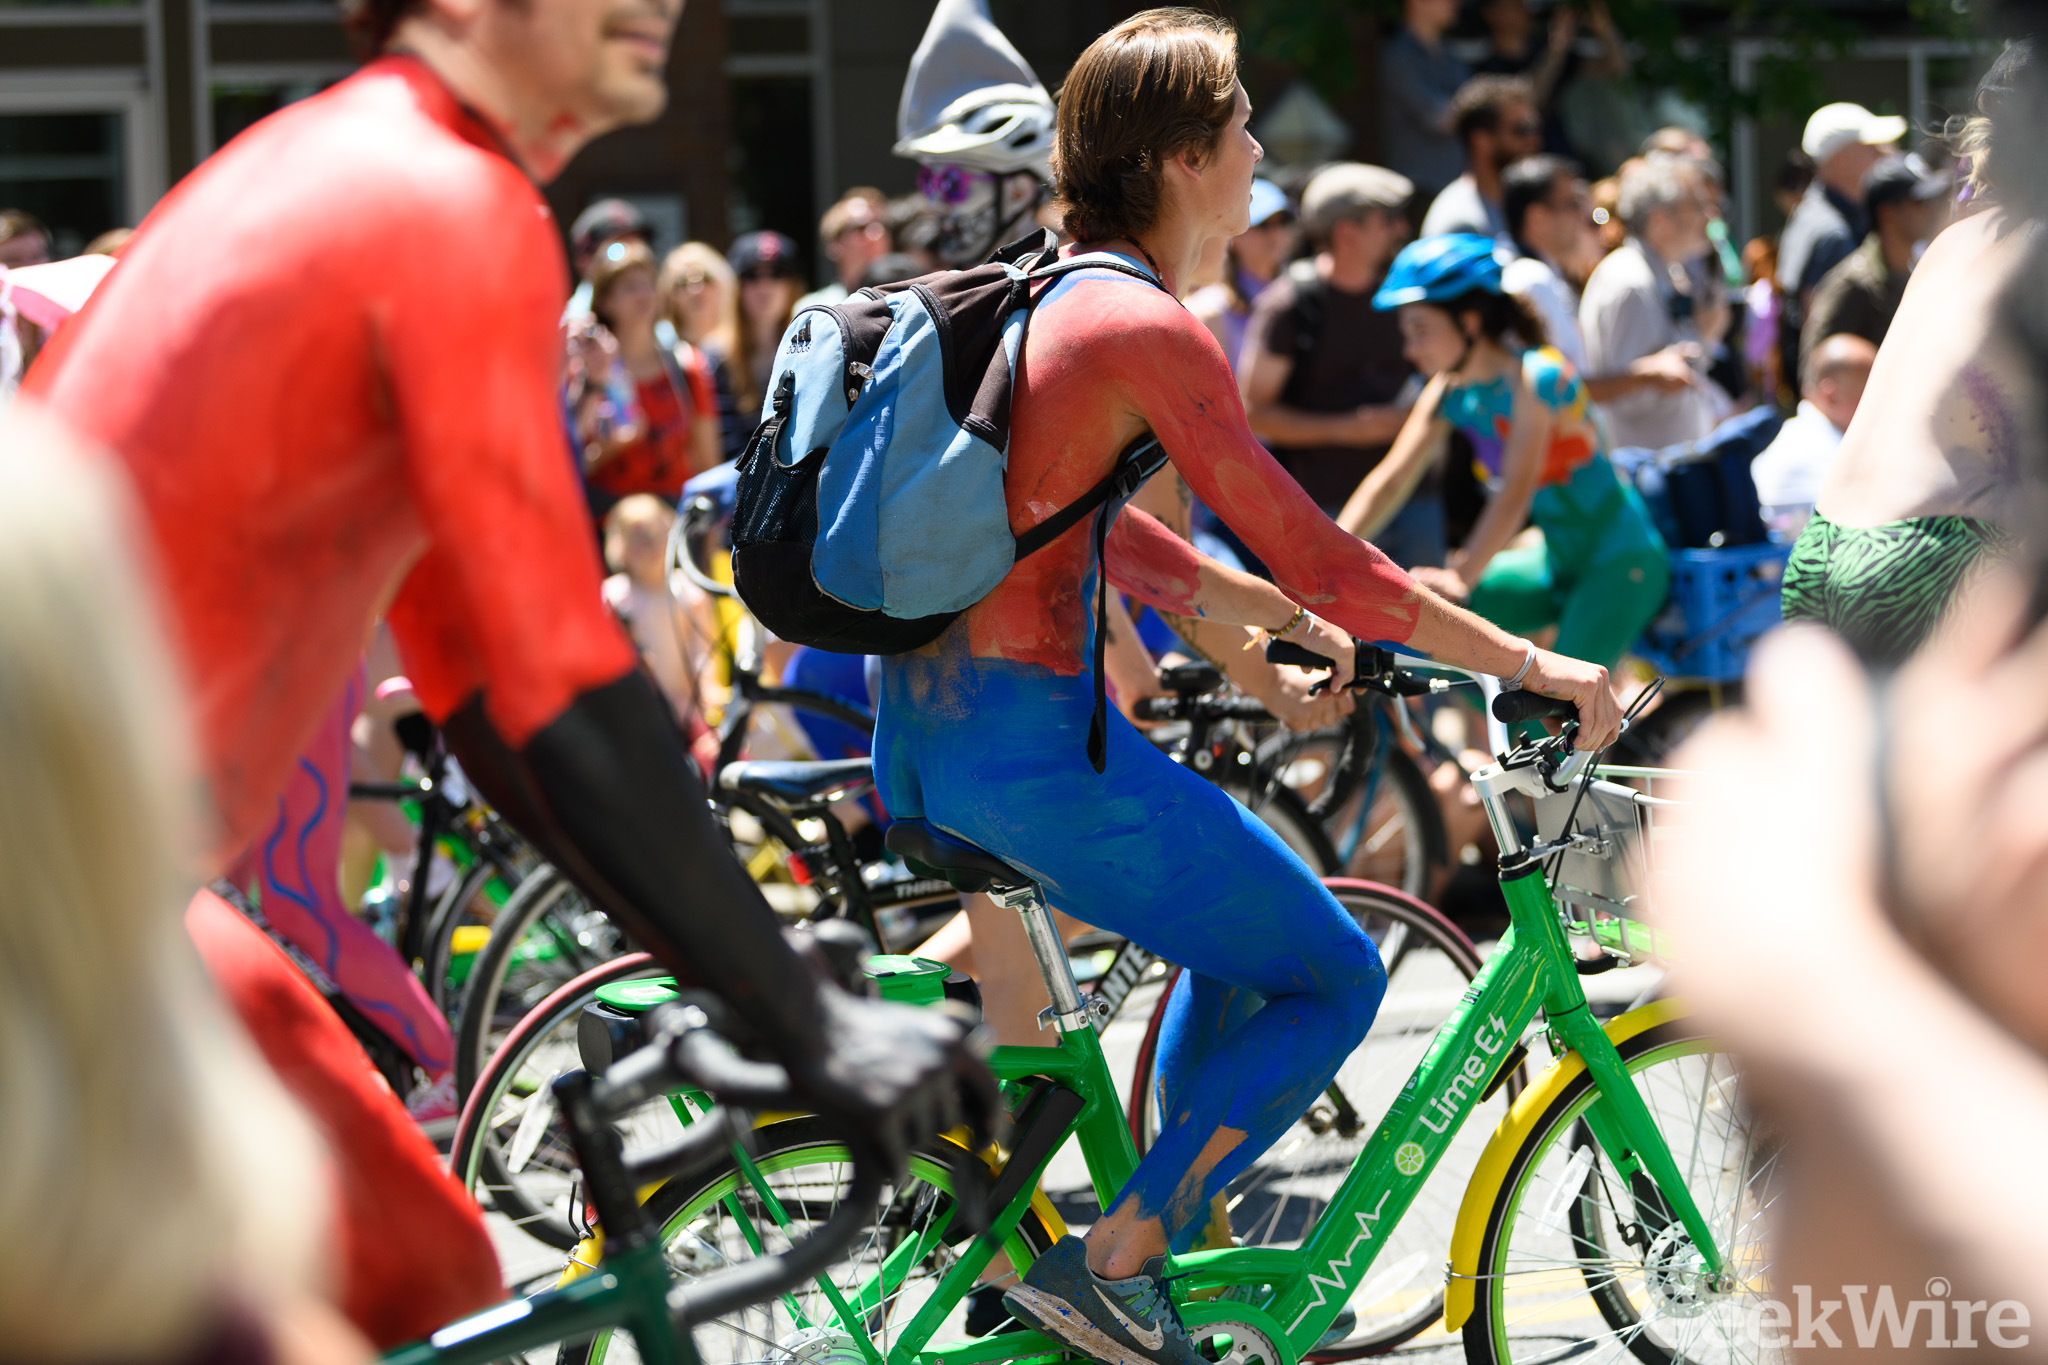 Seattle Fremont Solstice Parade 2015 - Naked Cyclists | Flickr